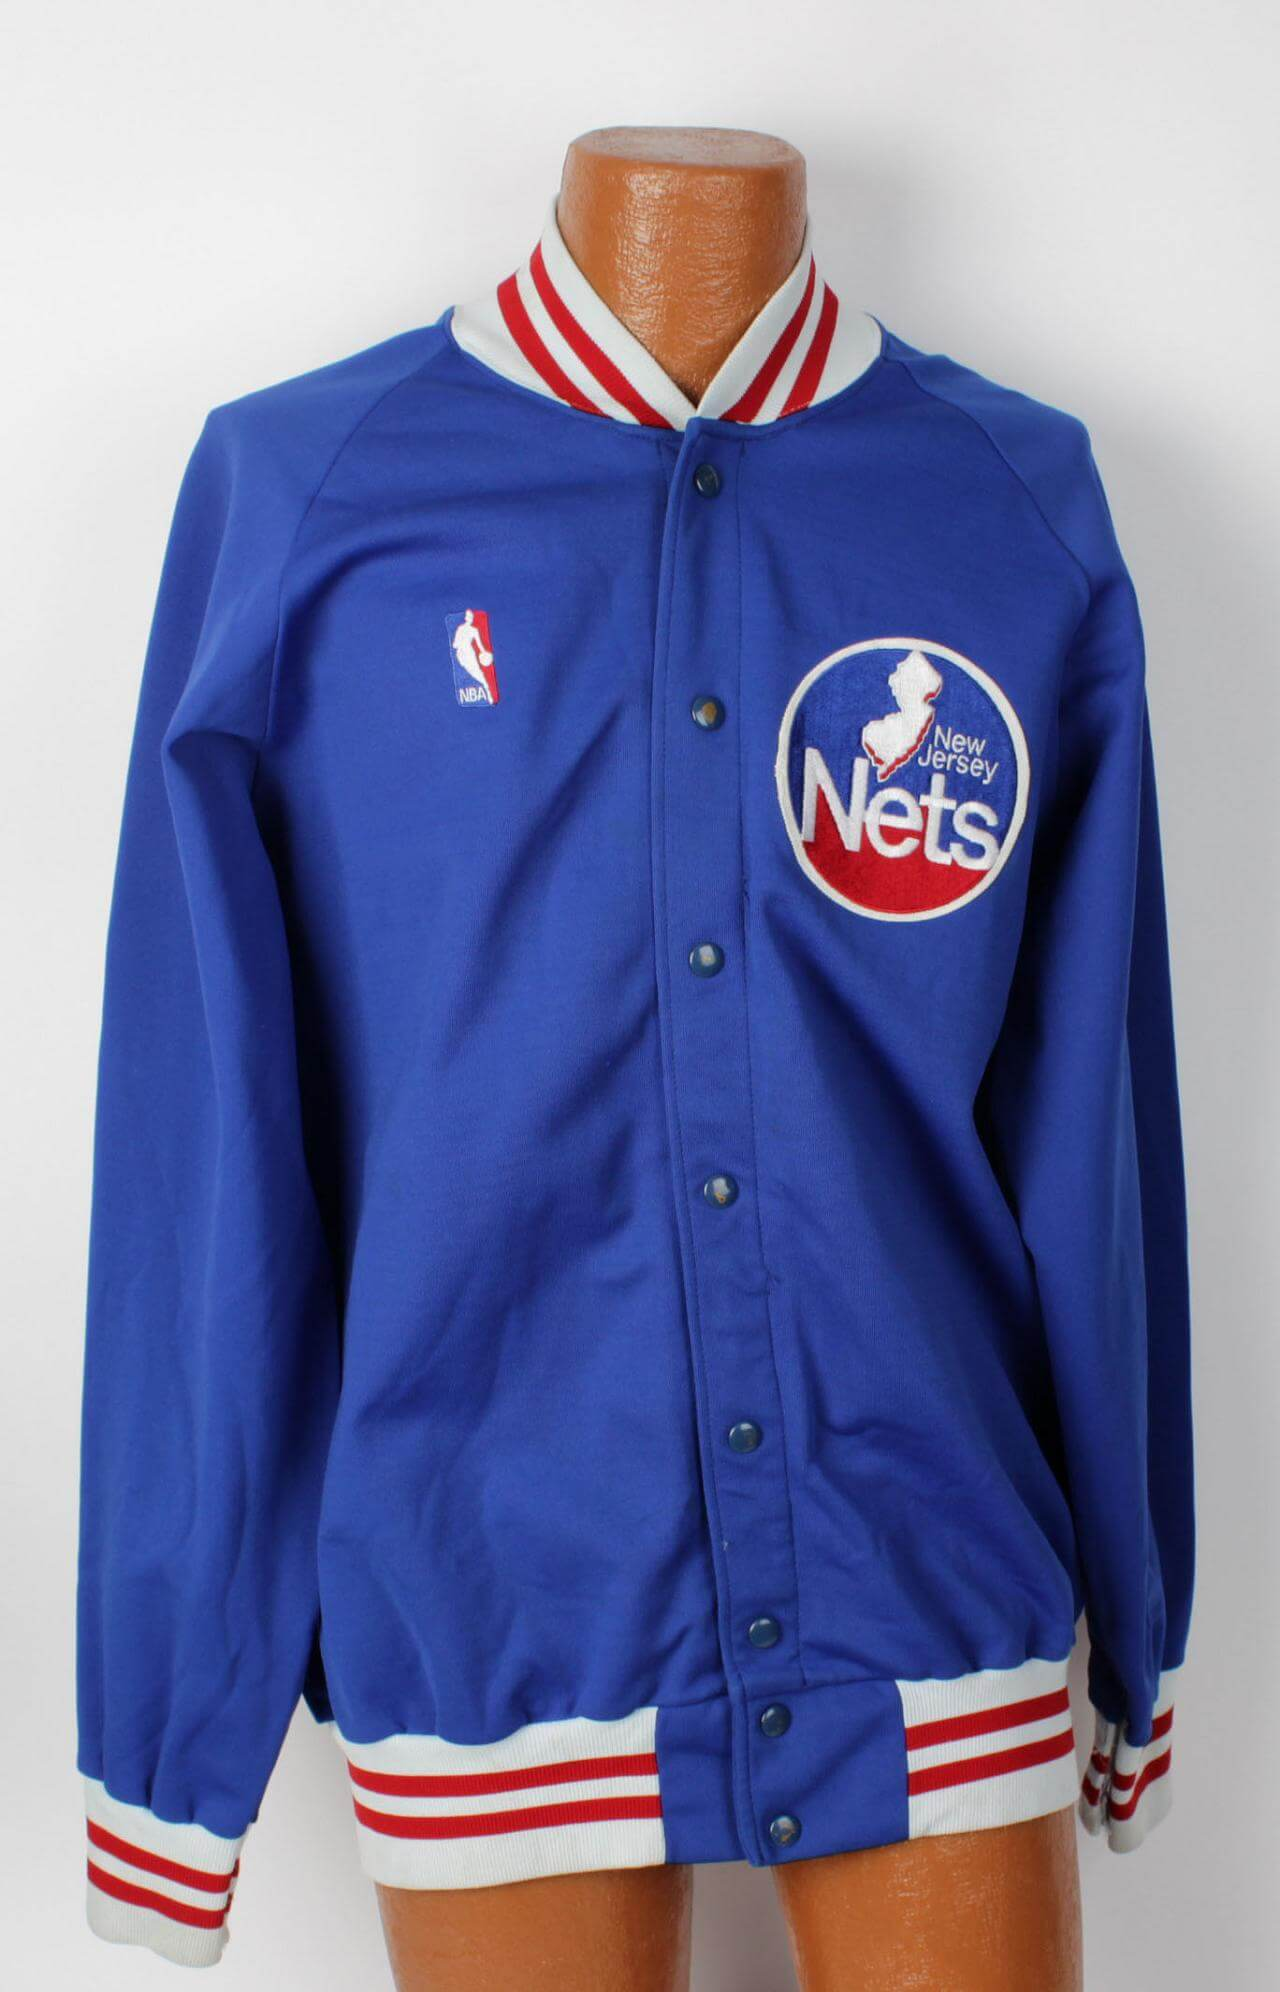 huge selection of d5030 20ab3 new jersey nets jacket